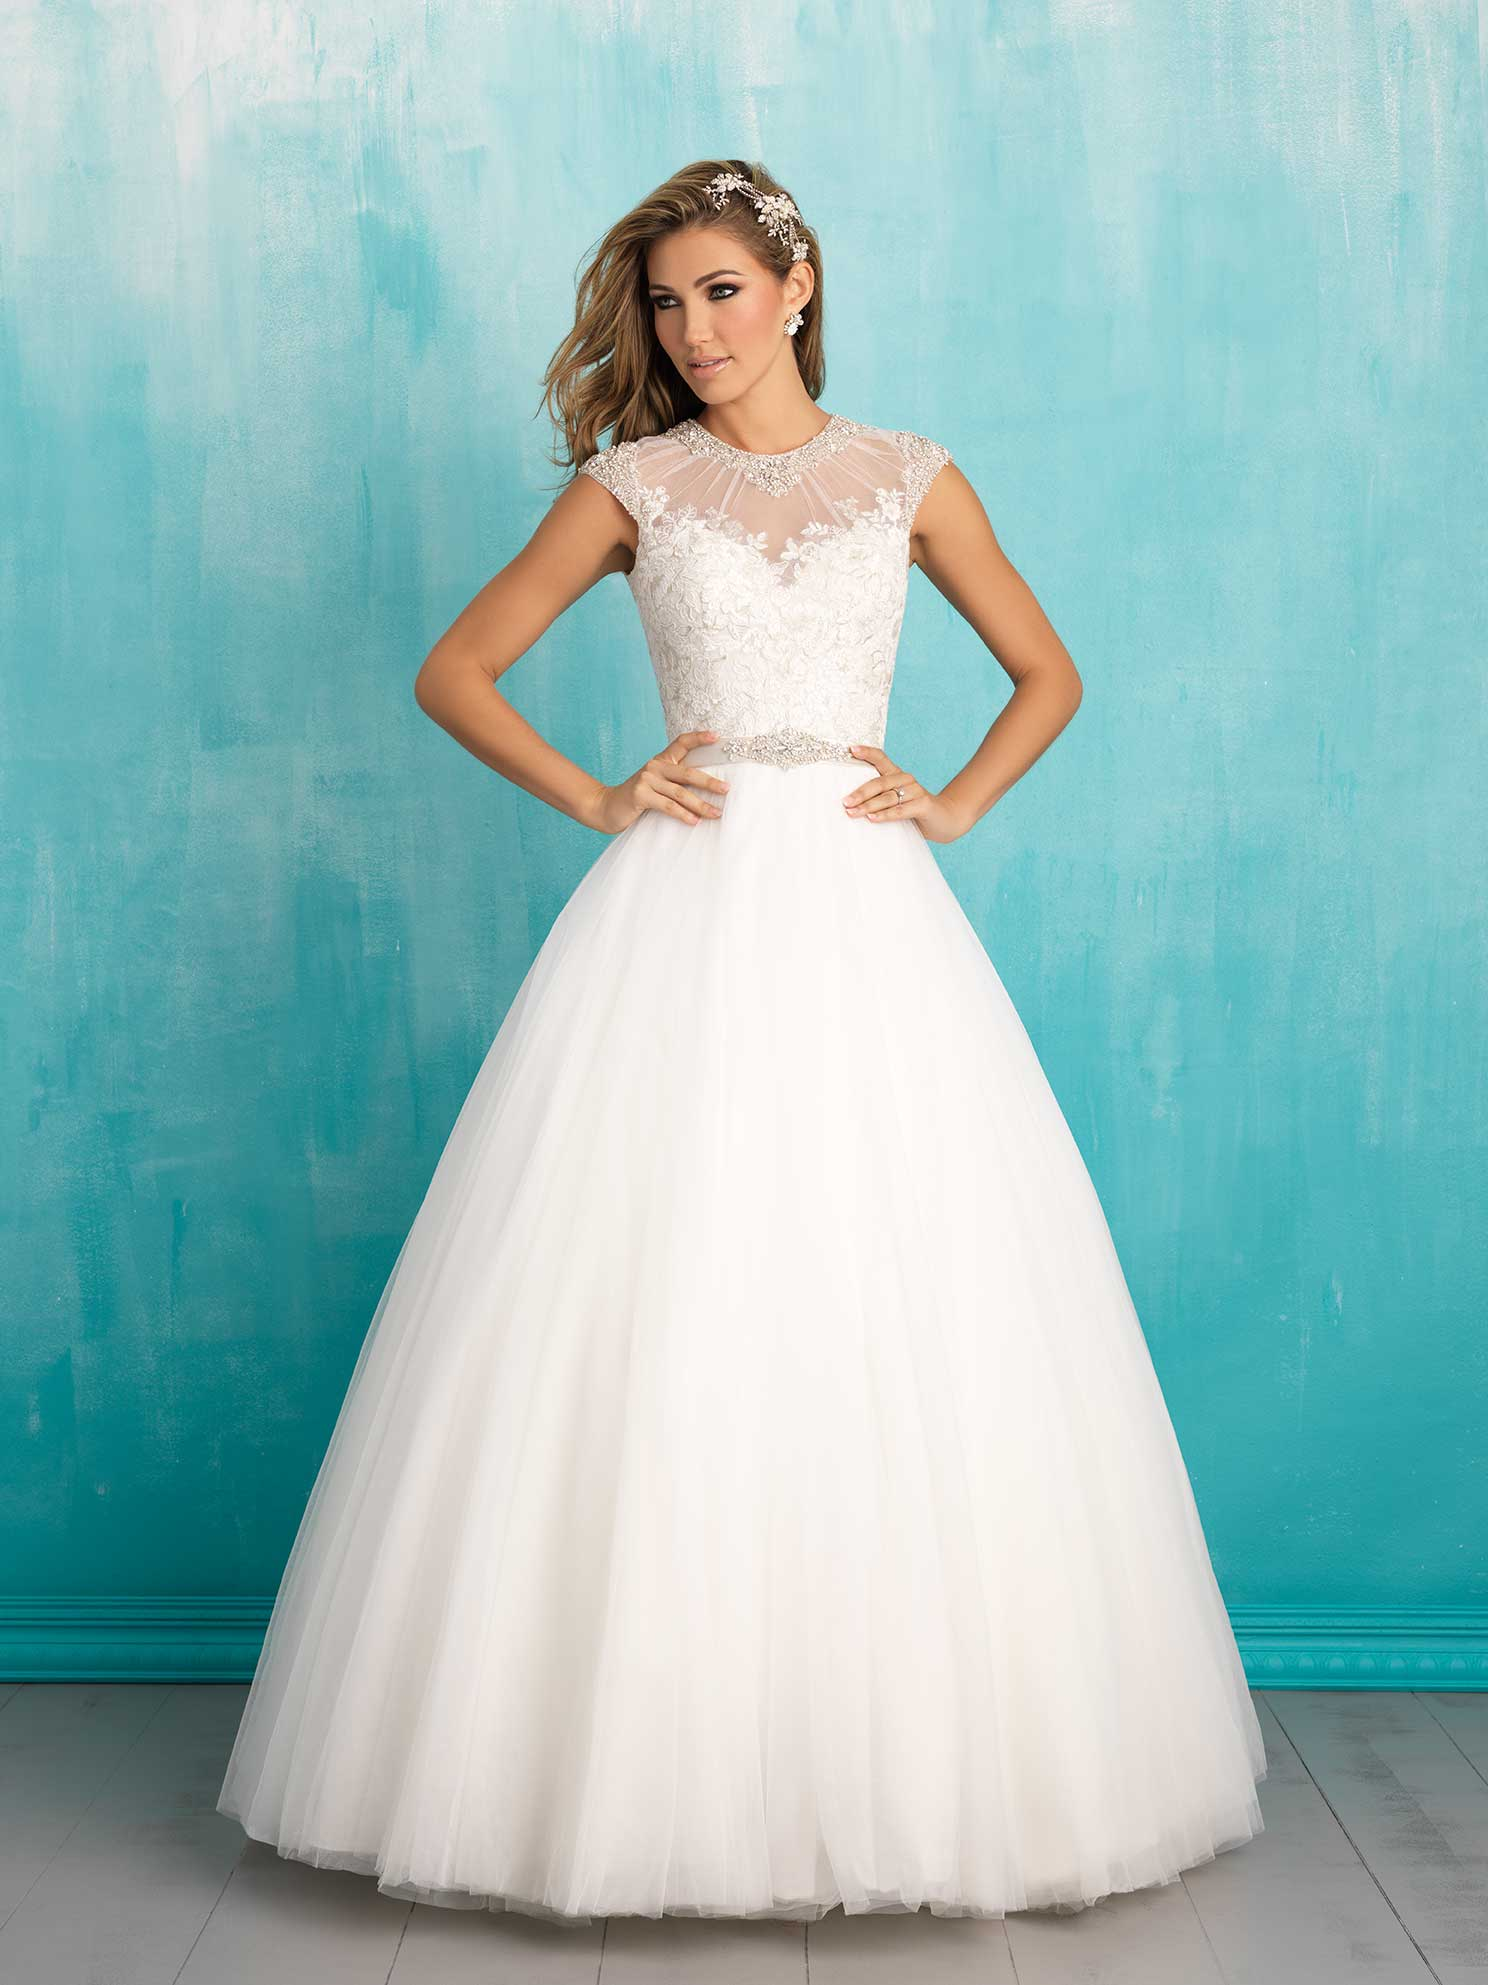 Diane\'s Bridal Boutique | Dallas Boutique Wedding Dresses: Shop Now